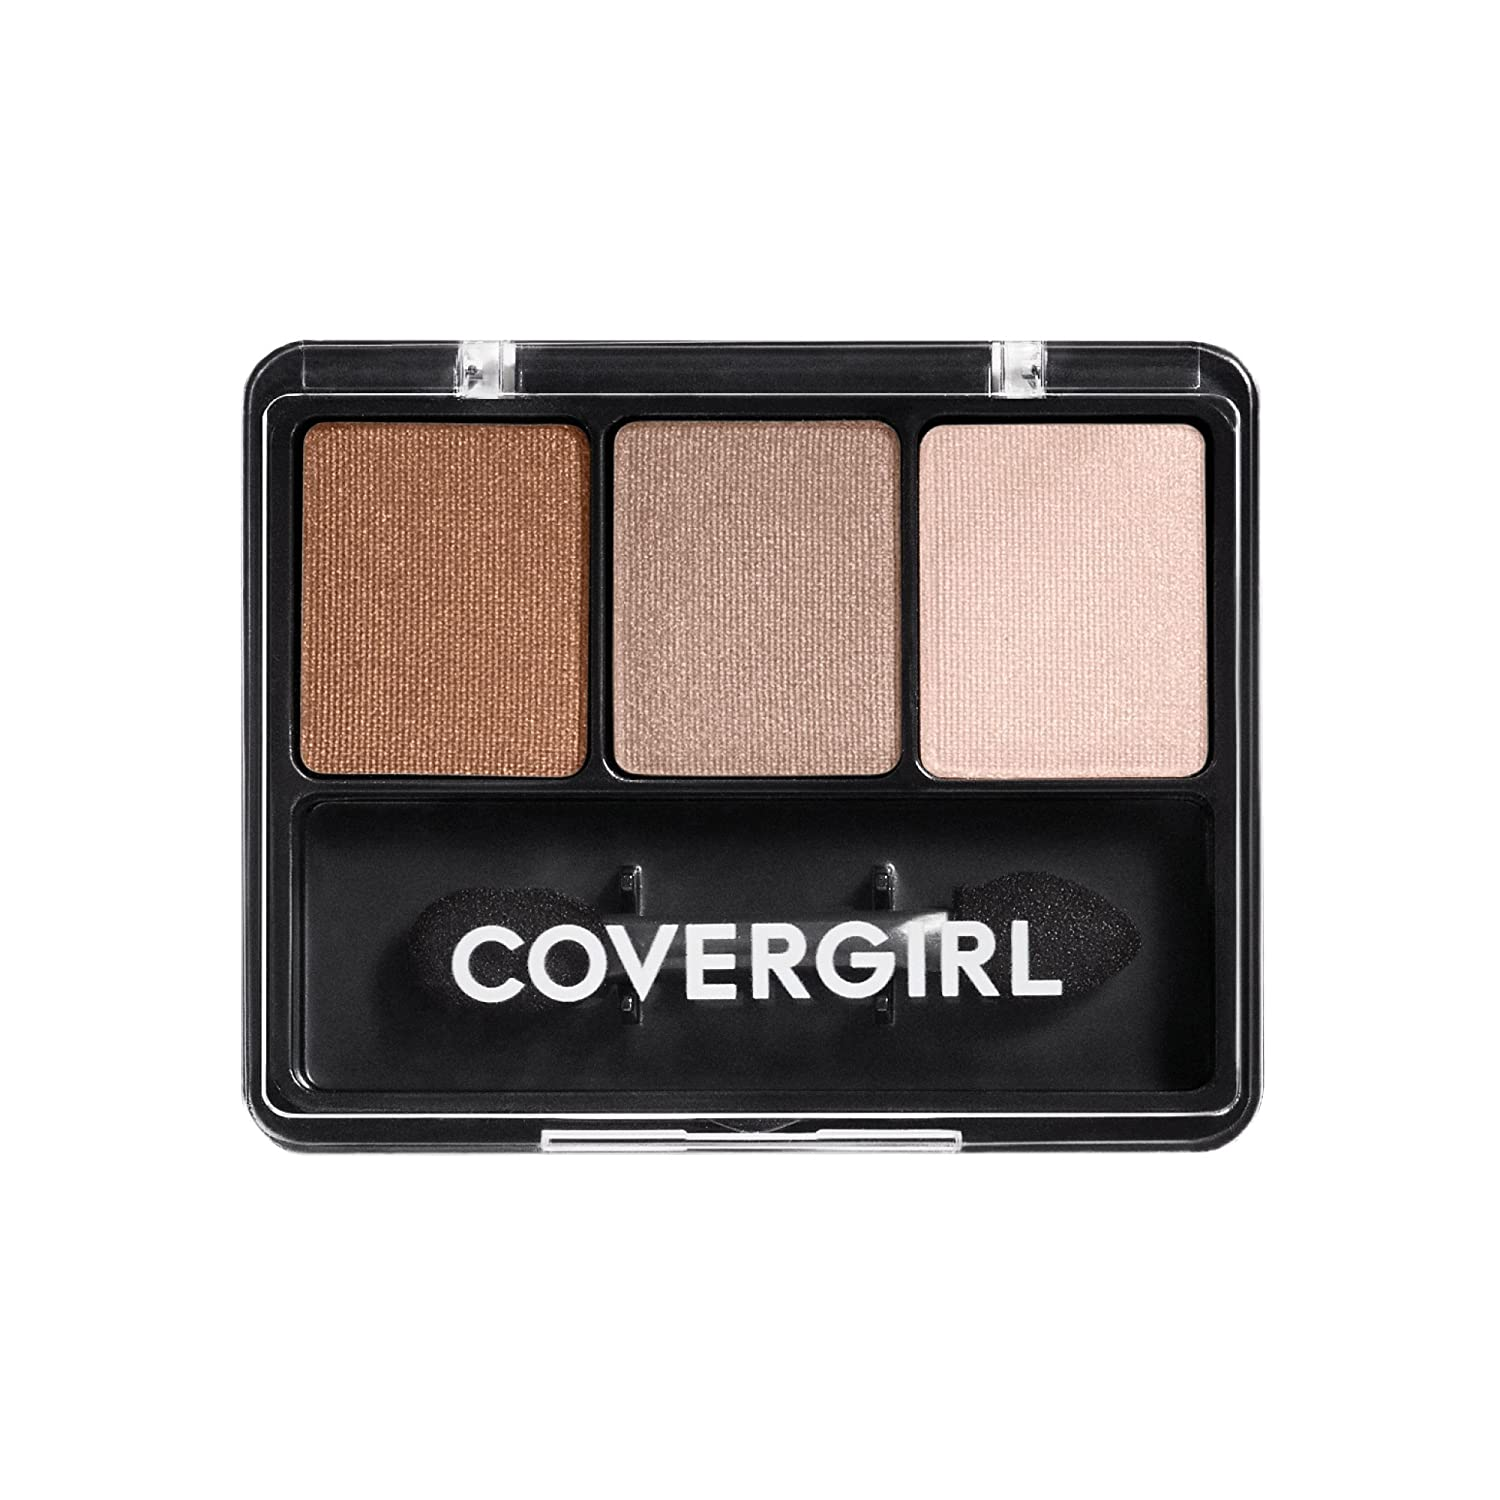 COVERGIRL - Eye Enhancers 3-Kit Eyeshadow - Packaging May Vary Coty COV-8558